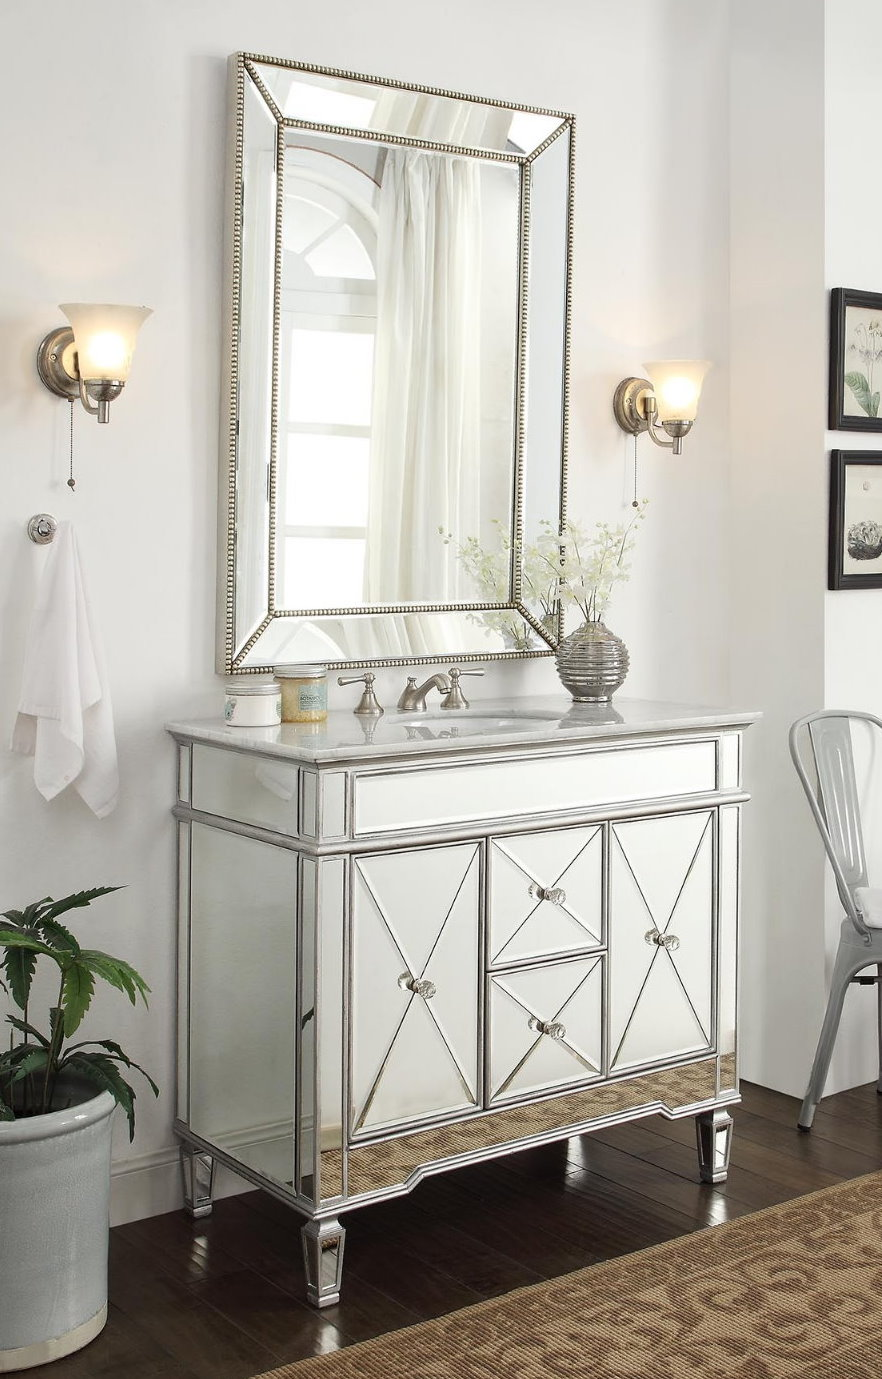 mirrors vanities of bathroom pictures mirrored and pinterest designs mirror vanity ideas